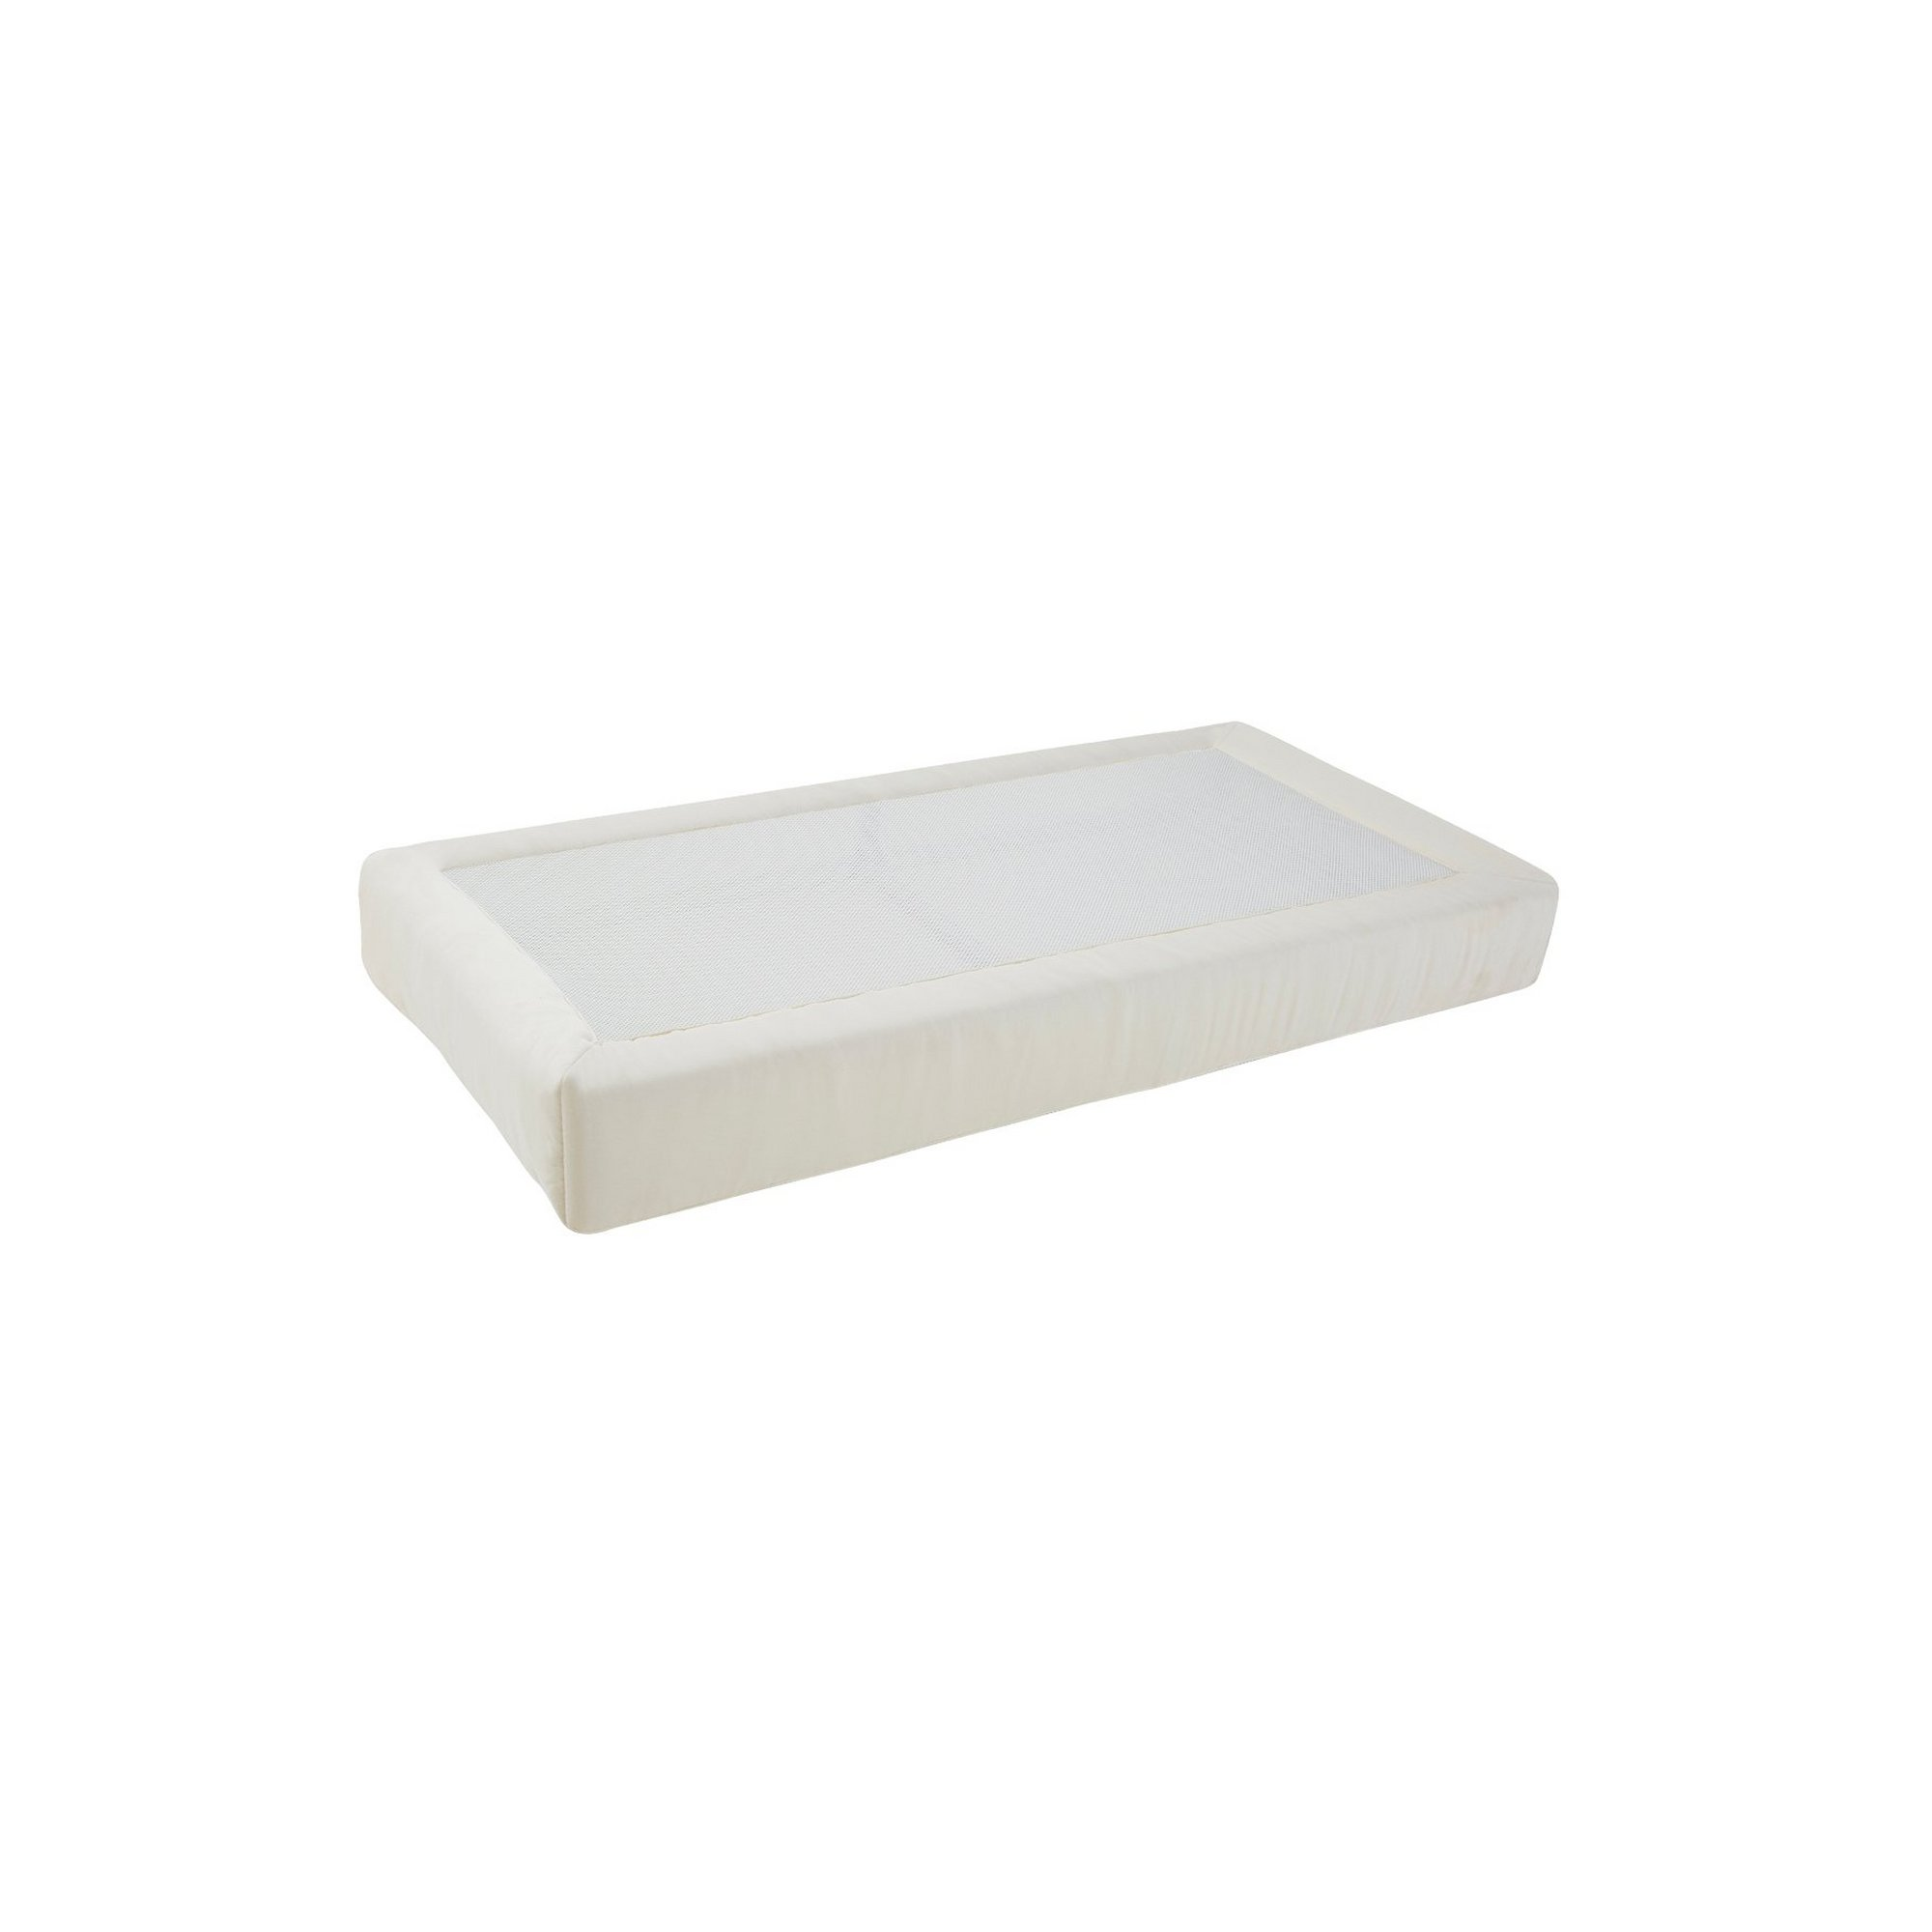 Image of Breathable Cot Bed Mattress - 140 x 70